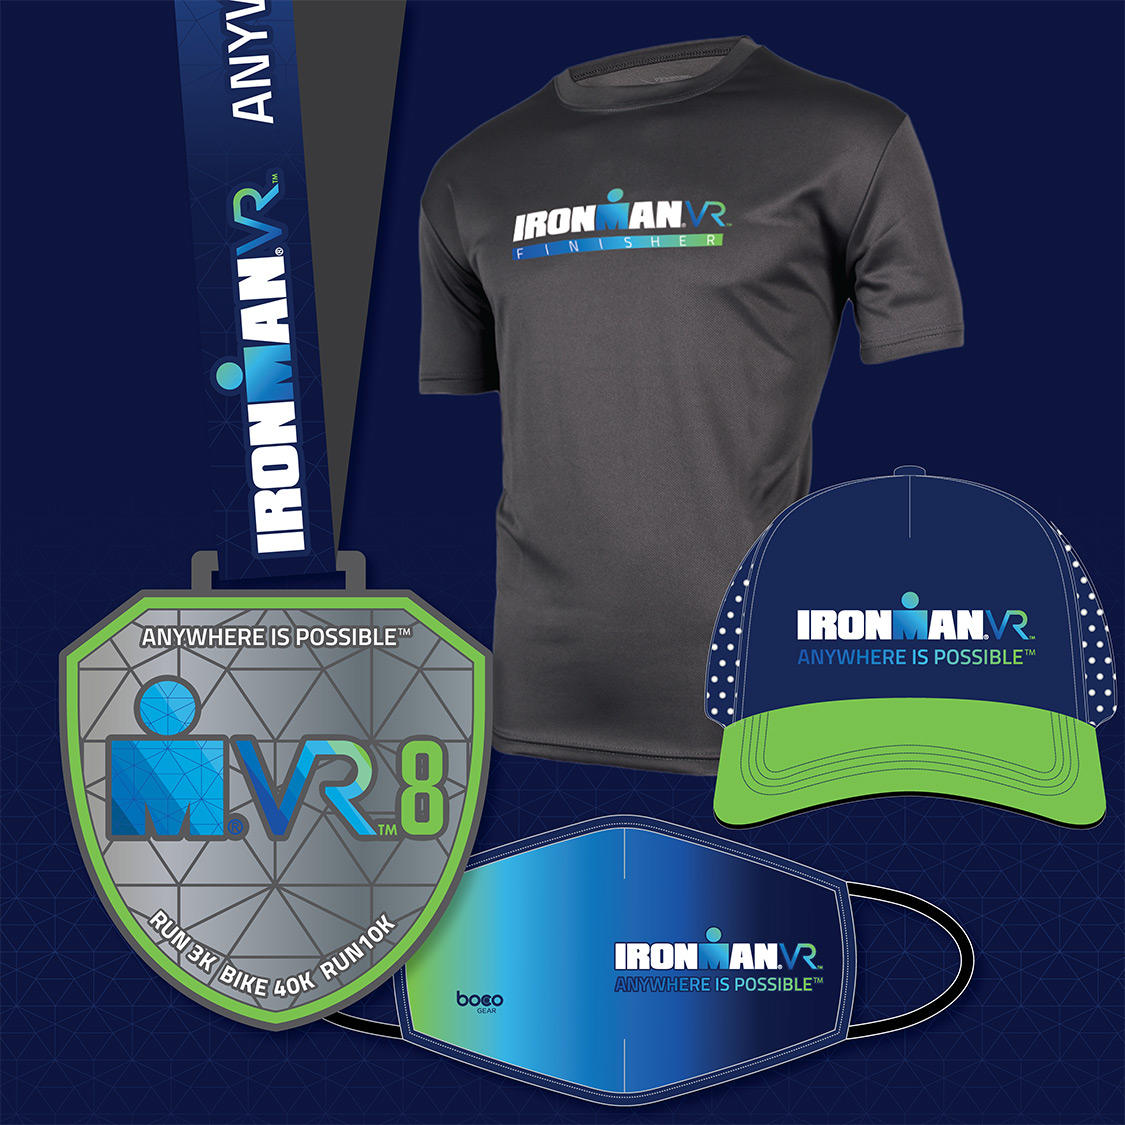 If youre in the U.S. or Europe, be sure to celebrate your #IRONMANVR8 finish with a Premium Plus Finisher Bundle, which features: 🏅 IRONMAN VR8 Finisher Medal 👕 IRONMAN VR Finisher Tee 🧢 IRONMAN VR Trucker Hat 😷 FREE Performance Face Mask